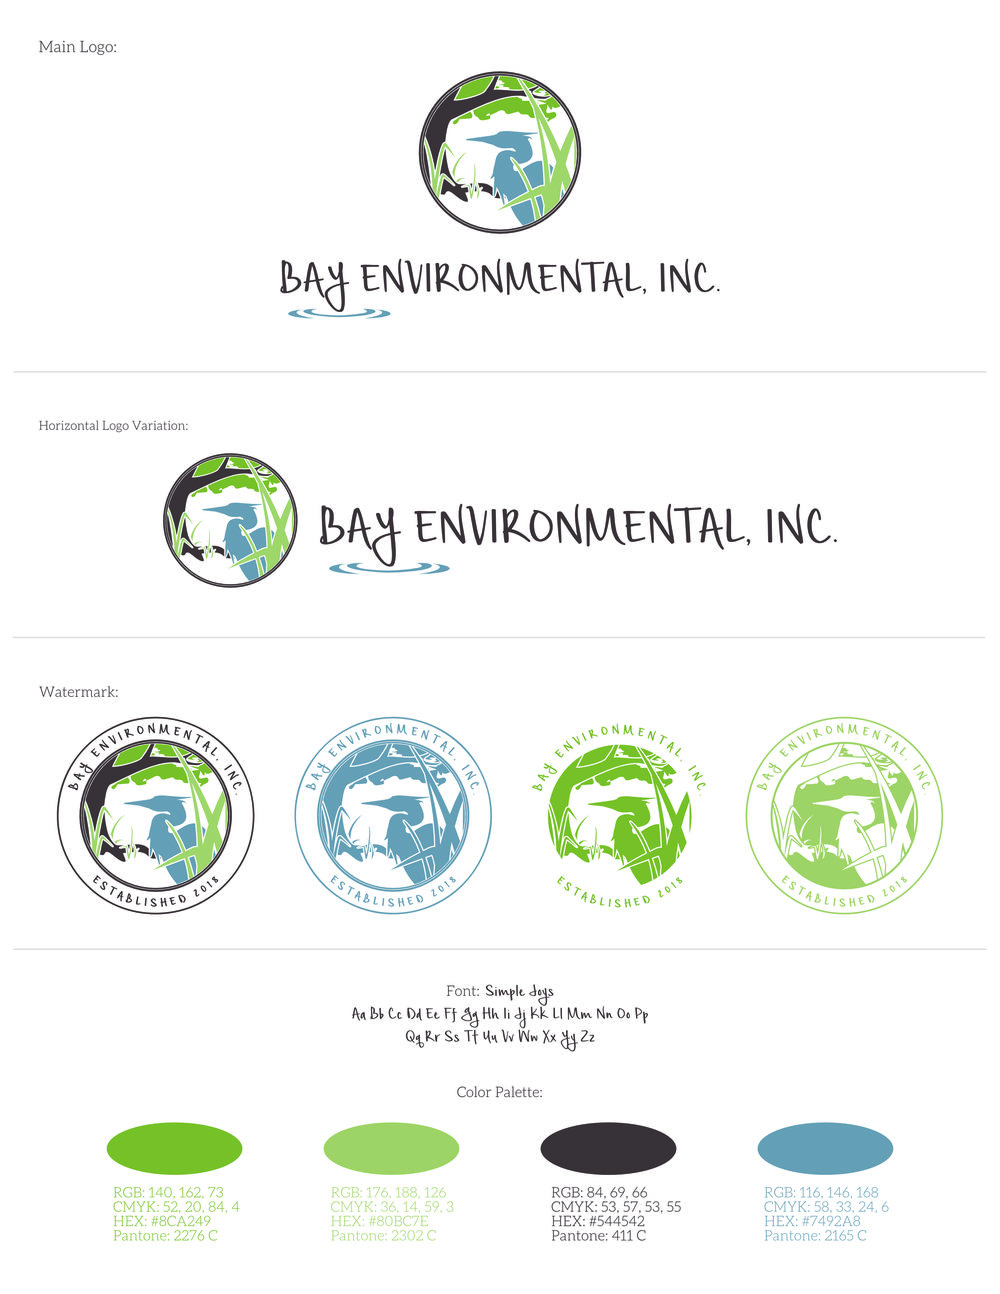 This style guide is for Bay Environmental, Inc - Brand designed by Tarragon Studios. Keep Reading to see more logo variations! #logo #design #environment #conservation